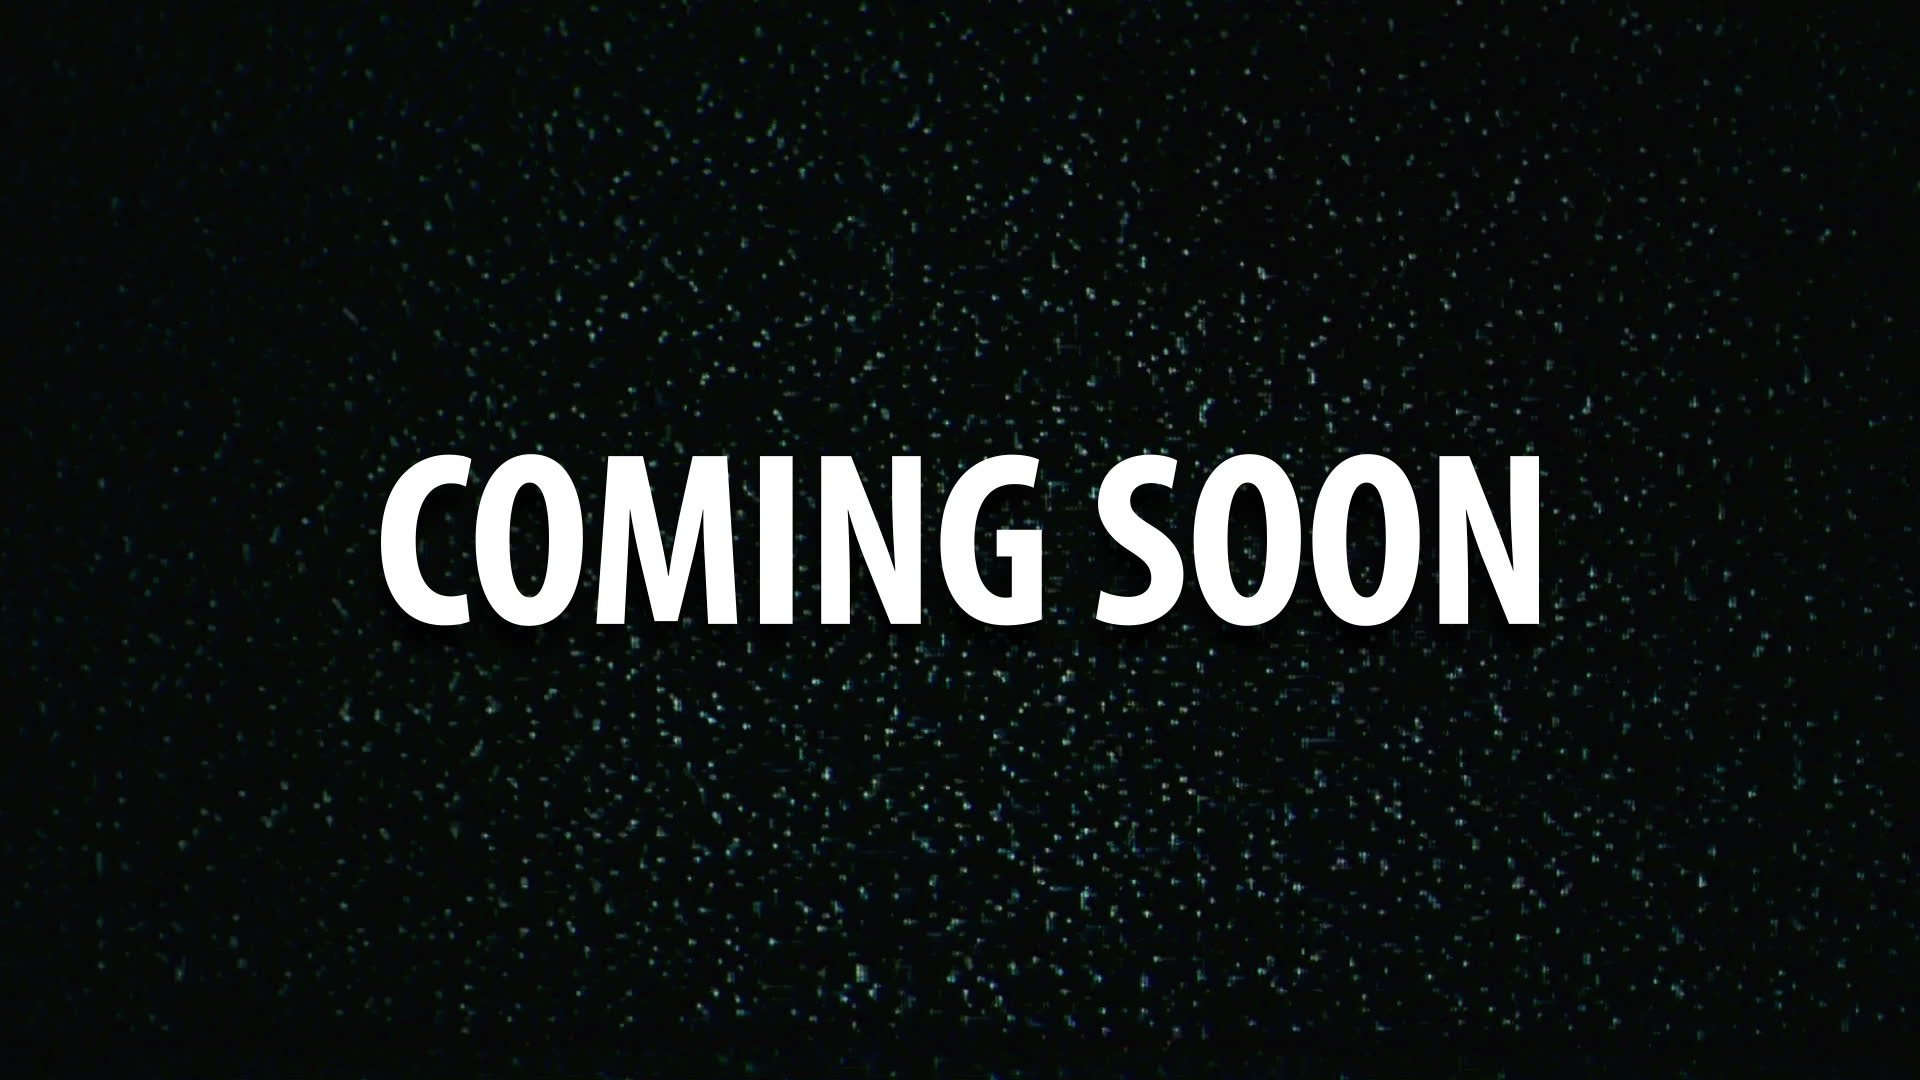 Coming Soon Sign Text Coming Soon Wallpaper 1920x1080 457762 Wallpaperup